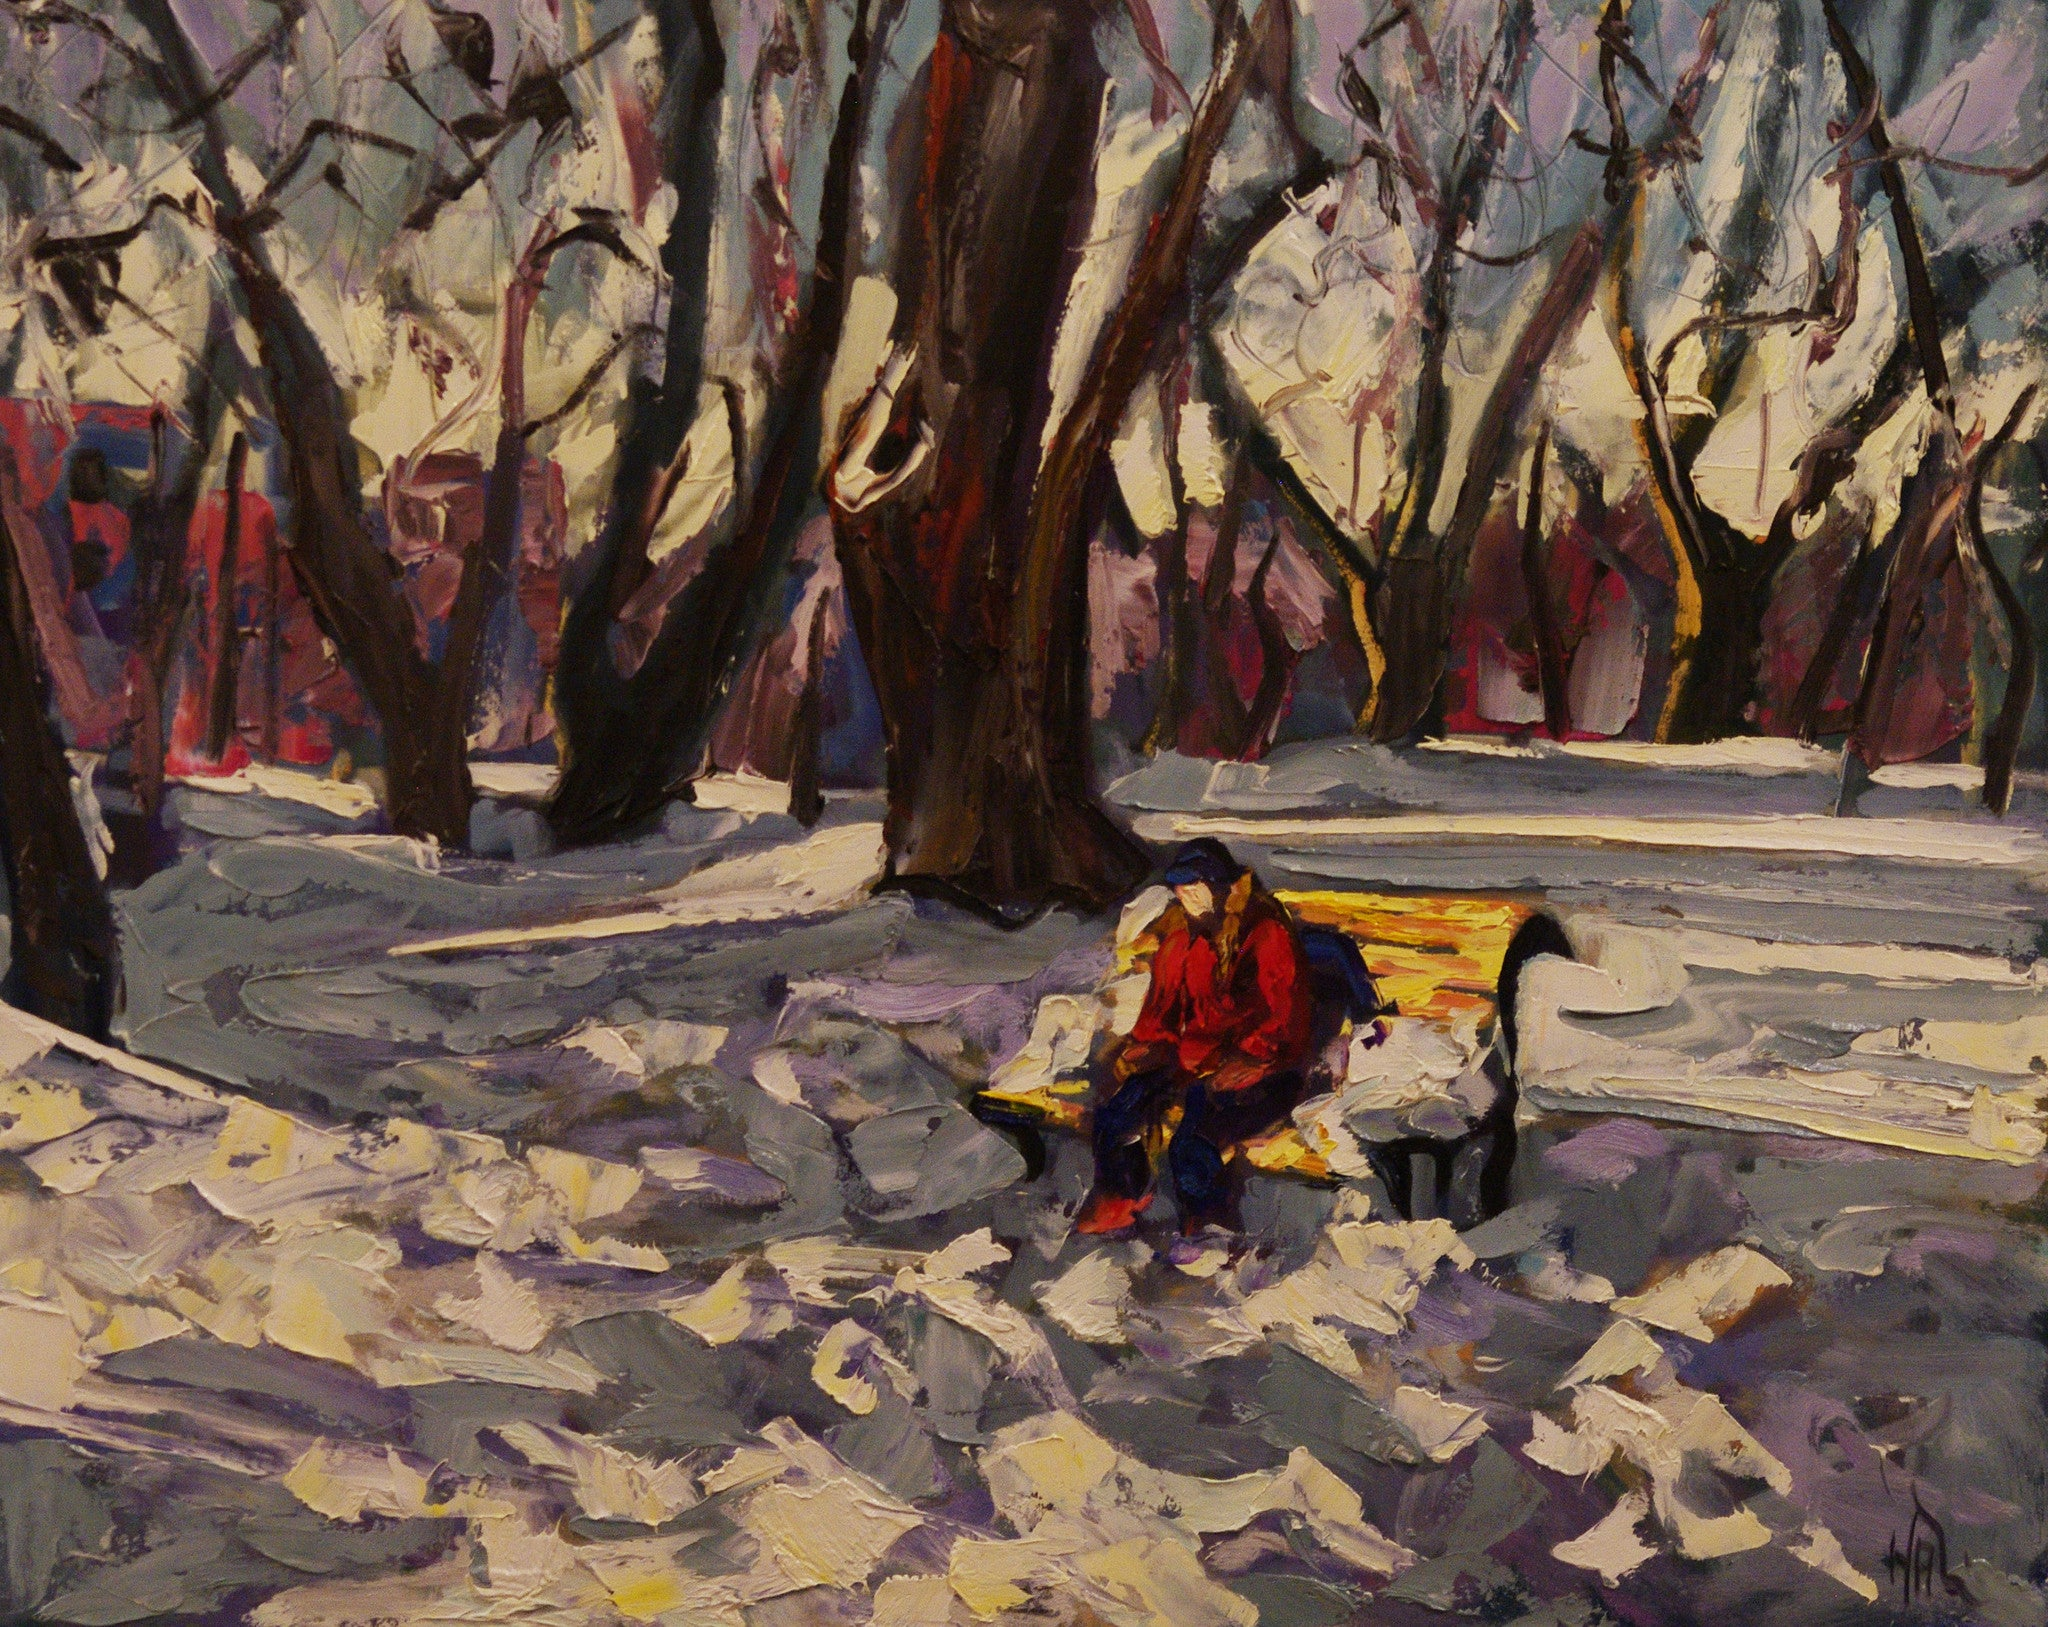 Loner On A Park Bench - Halin de Repentigny - painting